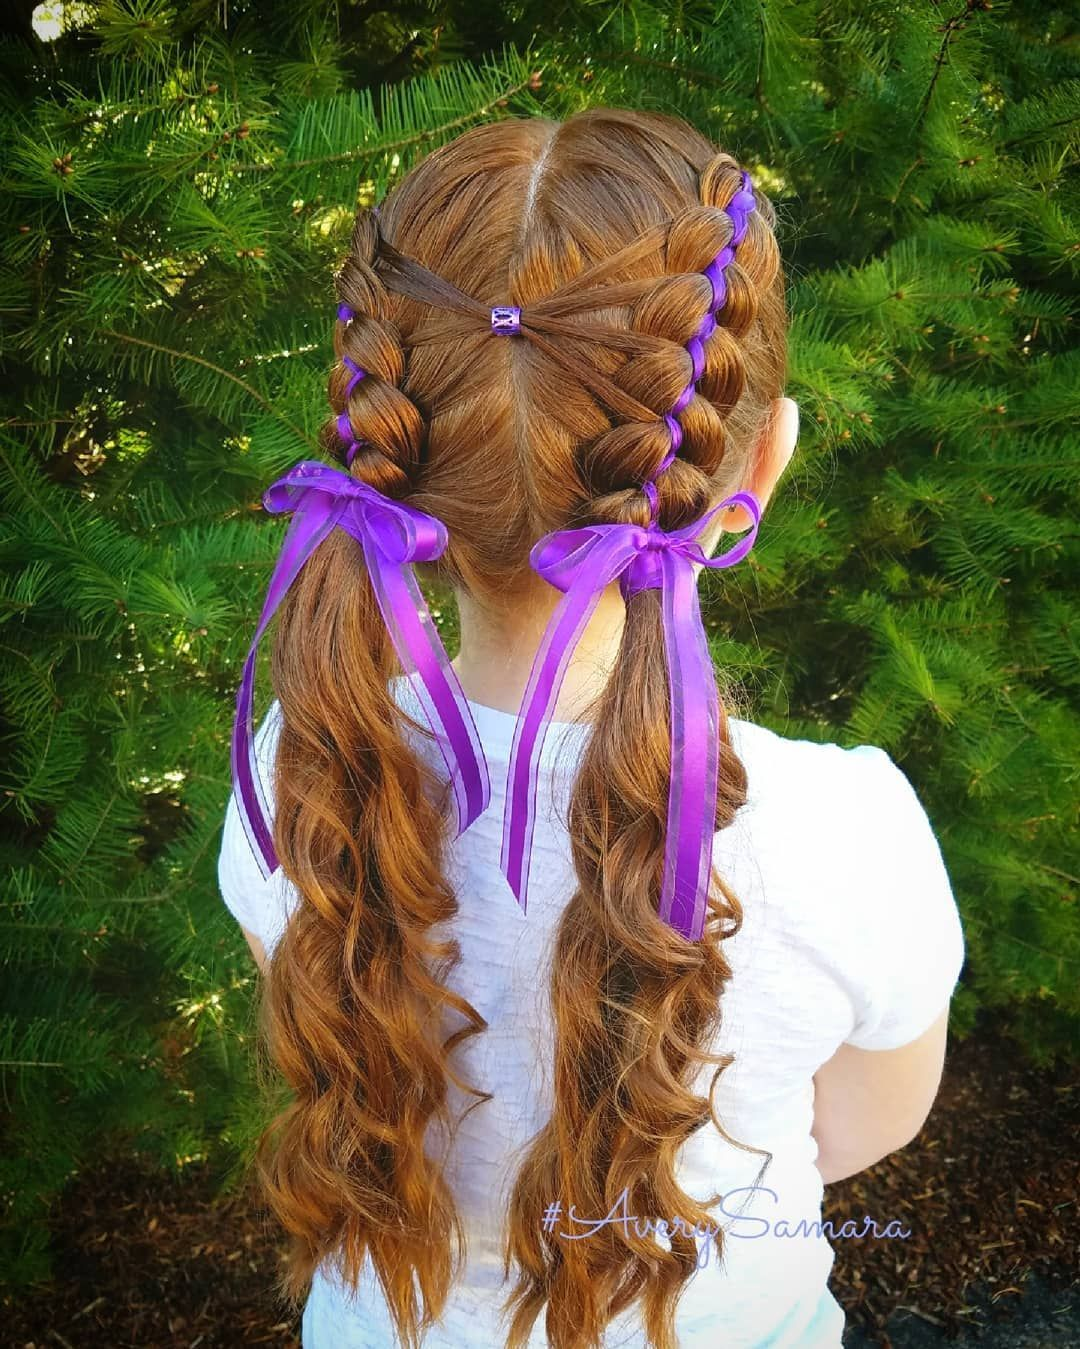 Ribbon Braids Five Strand Braid Five Strand Ribbon Braids Braid Combos Cute Girl Hairstyles Easy Braids Cool Braid Hairstyles Hair Styles Kids Hairstyles